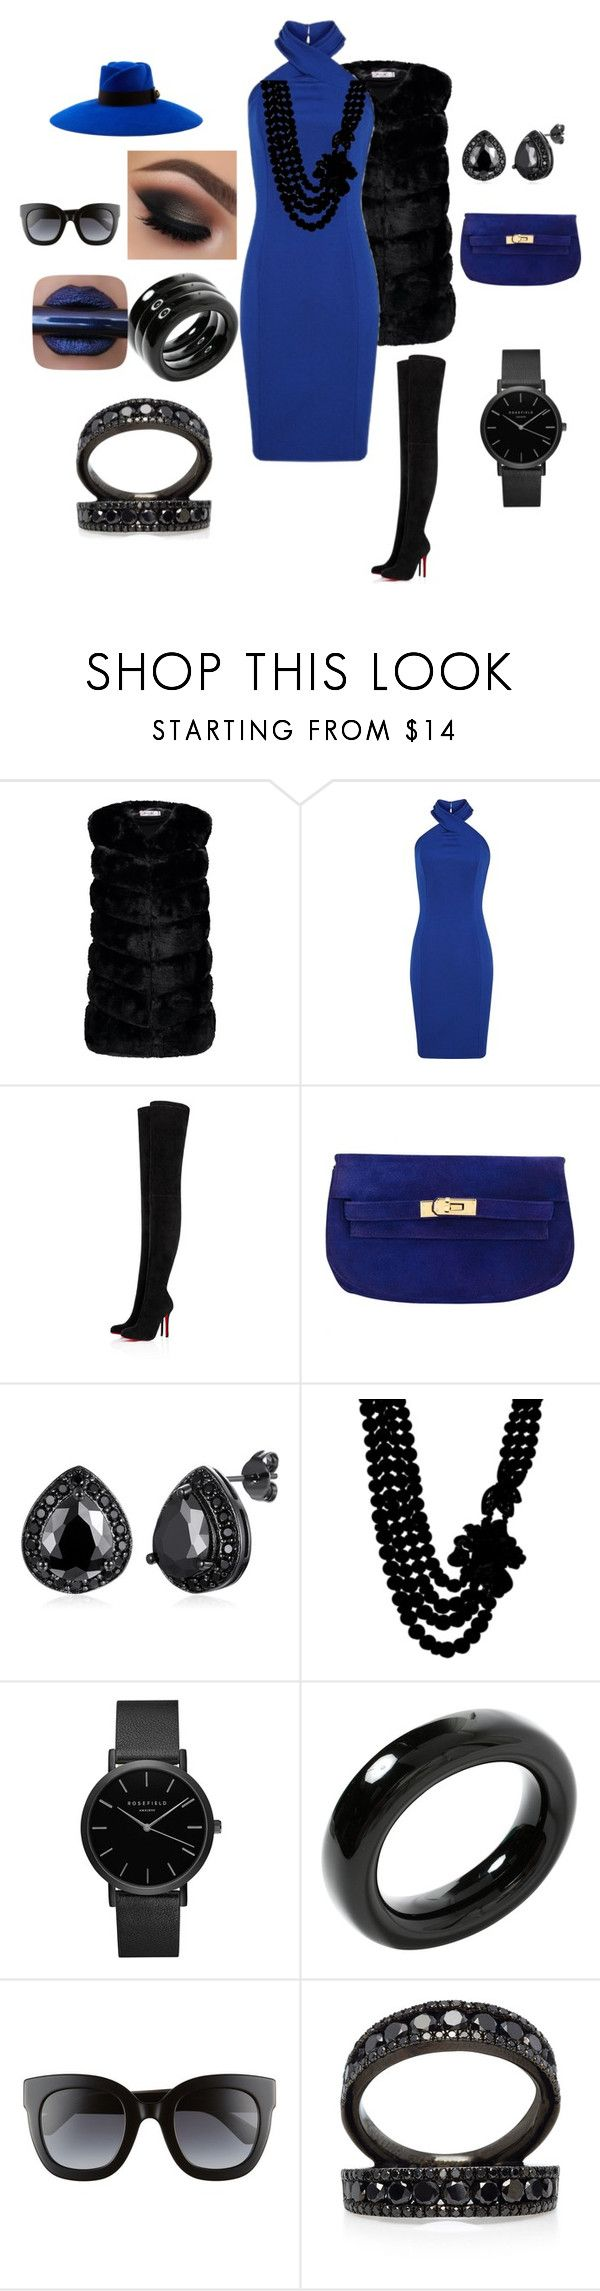 """""""ROYAL BLUE WINTER CLUBBING OUTFIT"""" by aleckmhopkins on Polyvore featuring Christian Louboutin, Hermès, Anne Klein, Topshop, Tiffany & Co., Gucci and Colette Jewelry"""